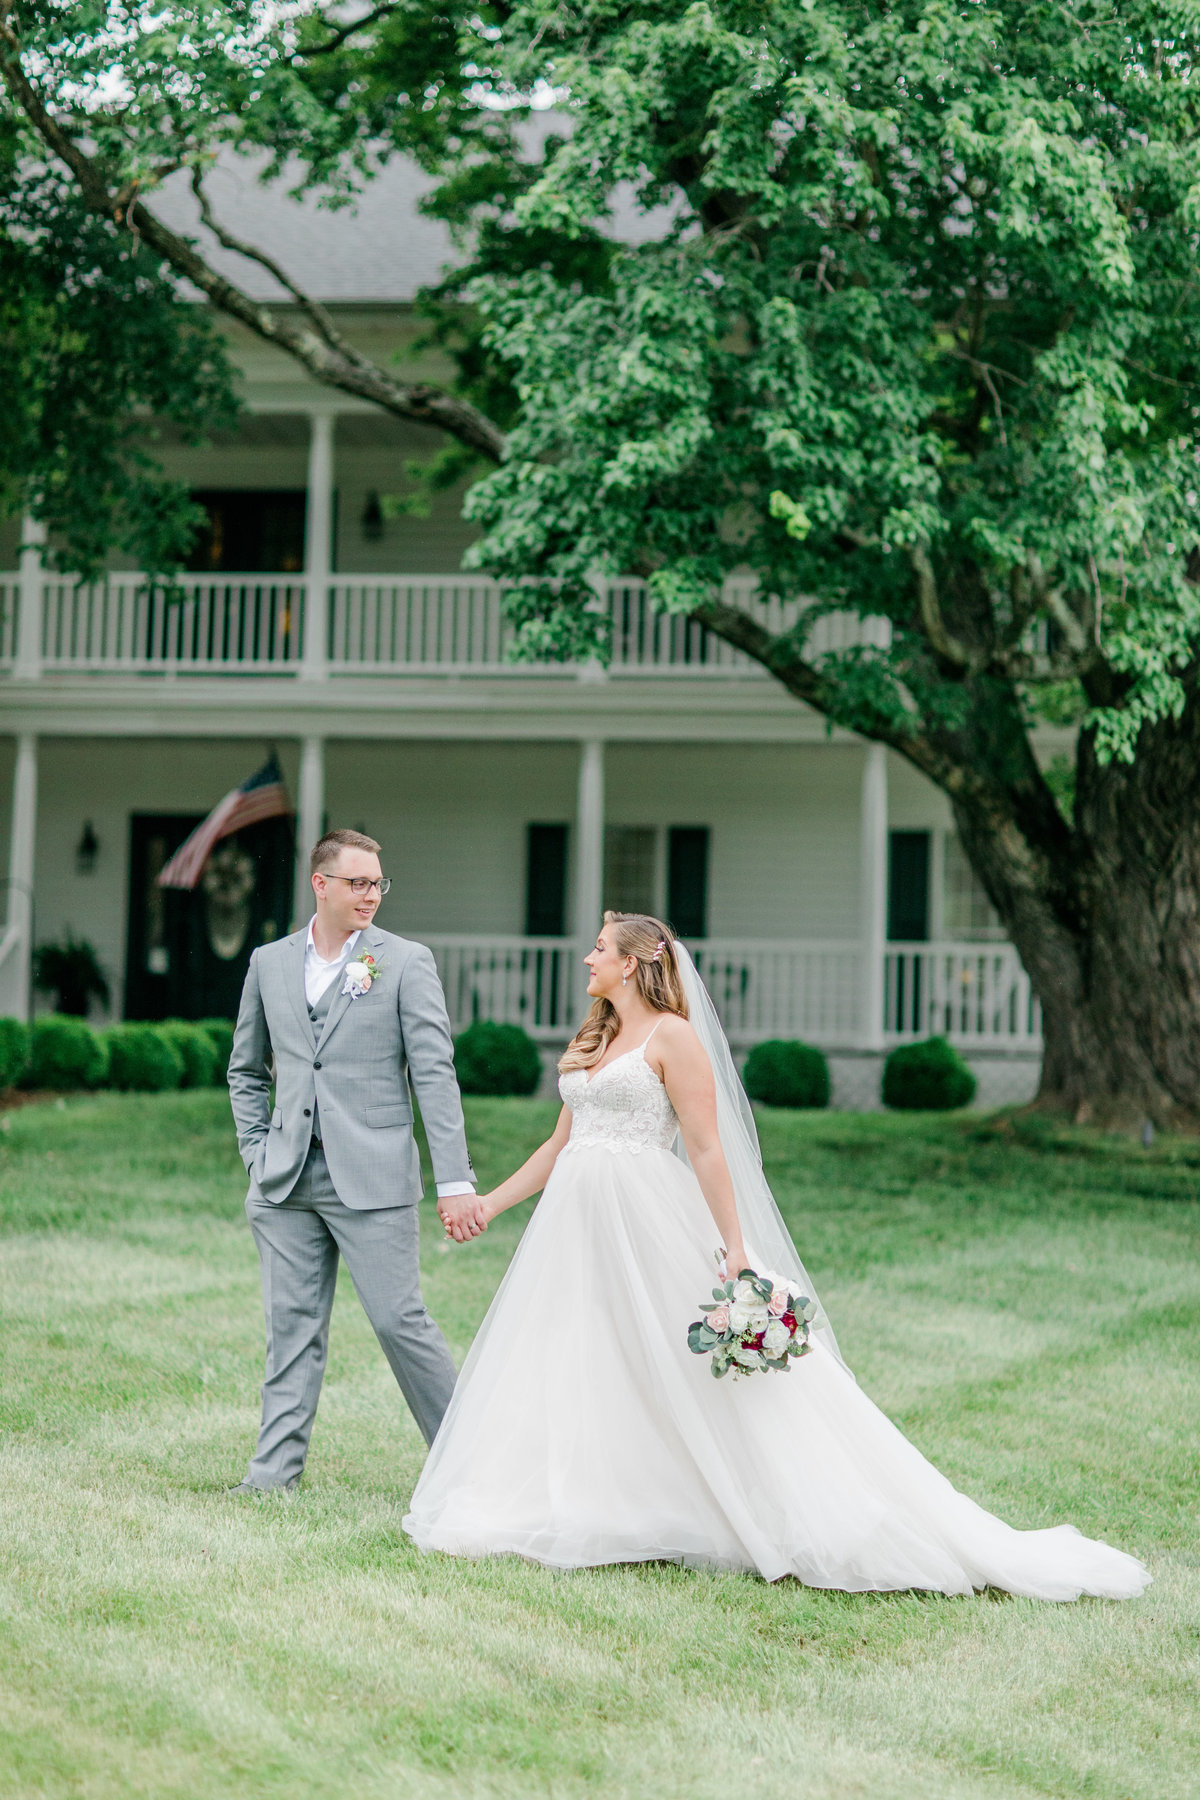 RockHillPlantation_Wedding_KatieZach_AngelikaJohnsPhotography-4662